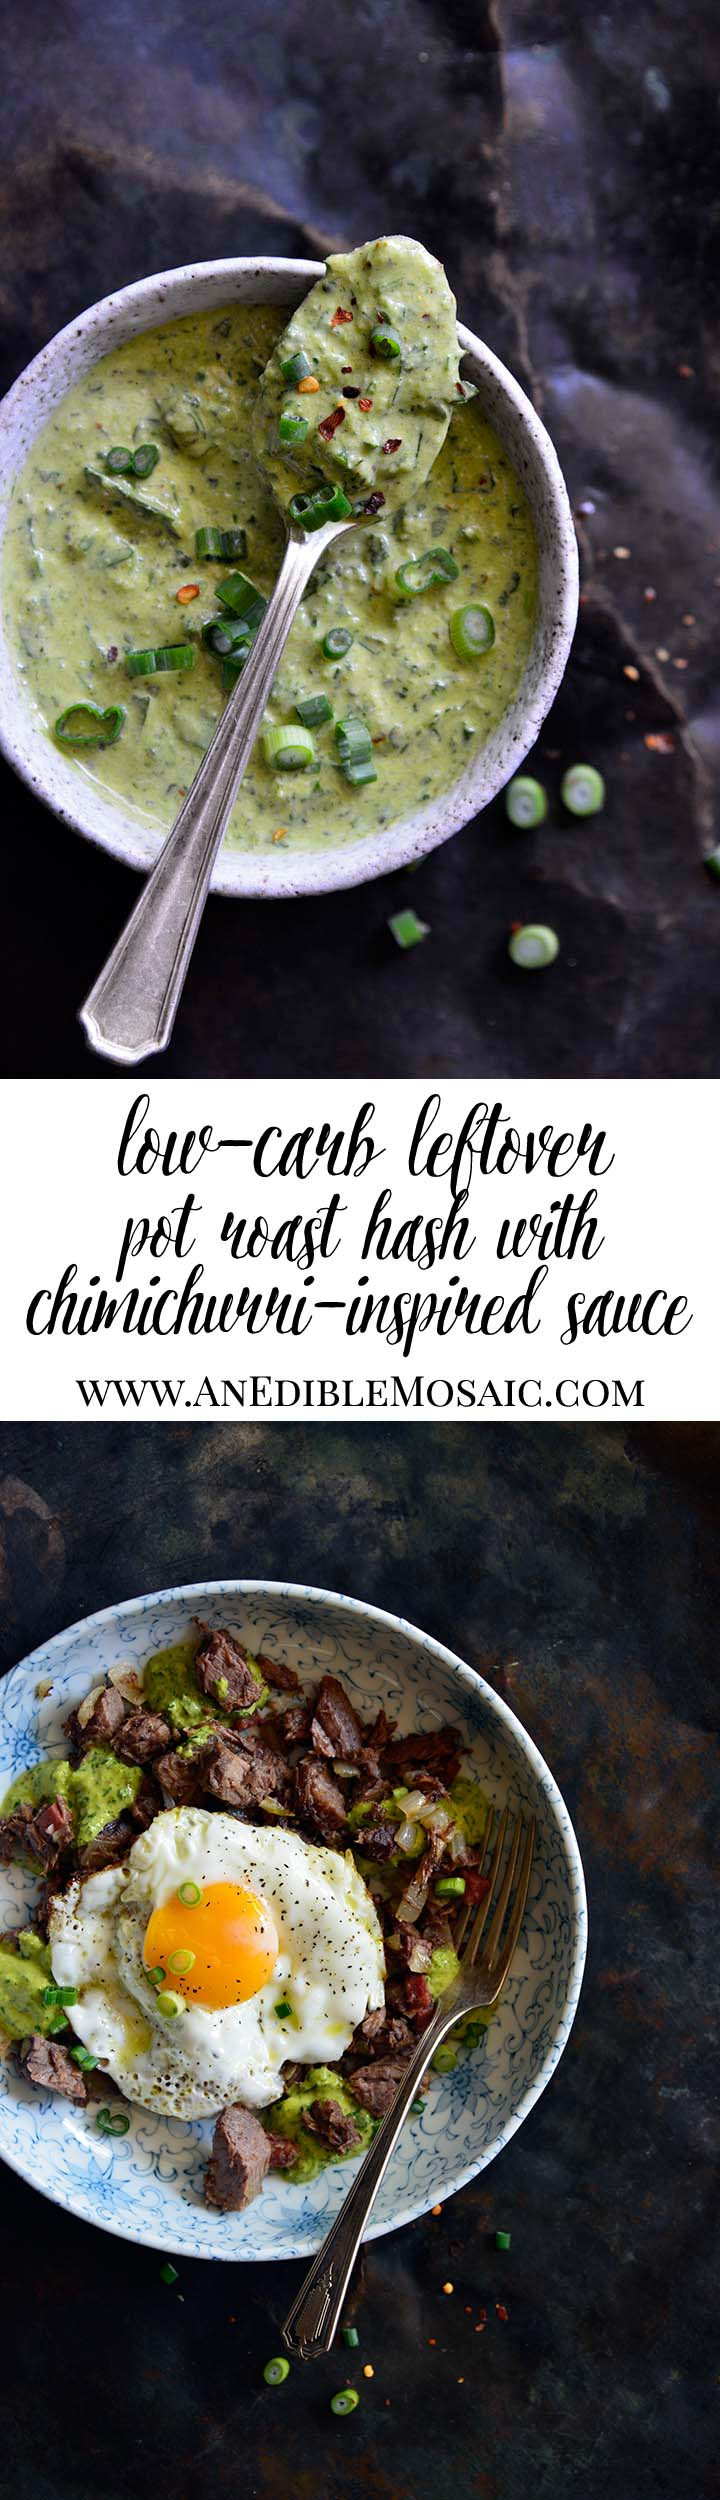 Leftover Pot Roast Hash with Chimichurri-Inspired Sauce Long Pin